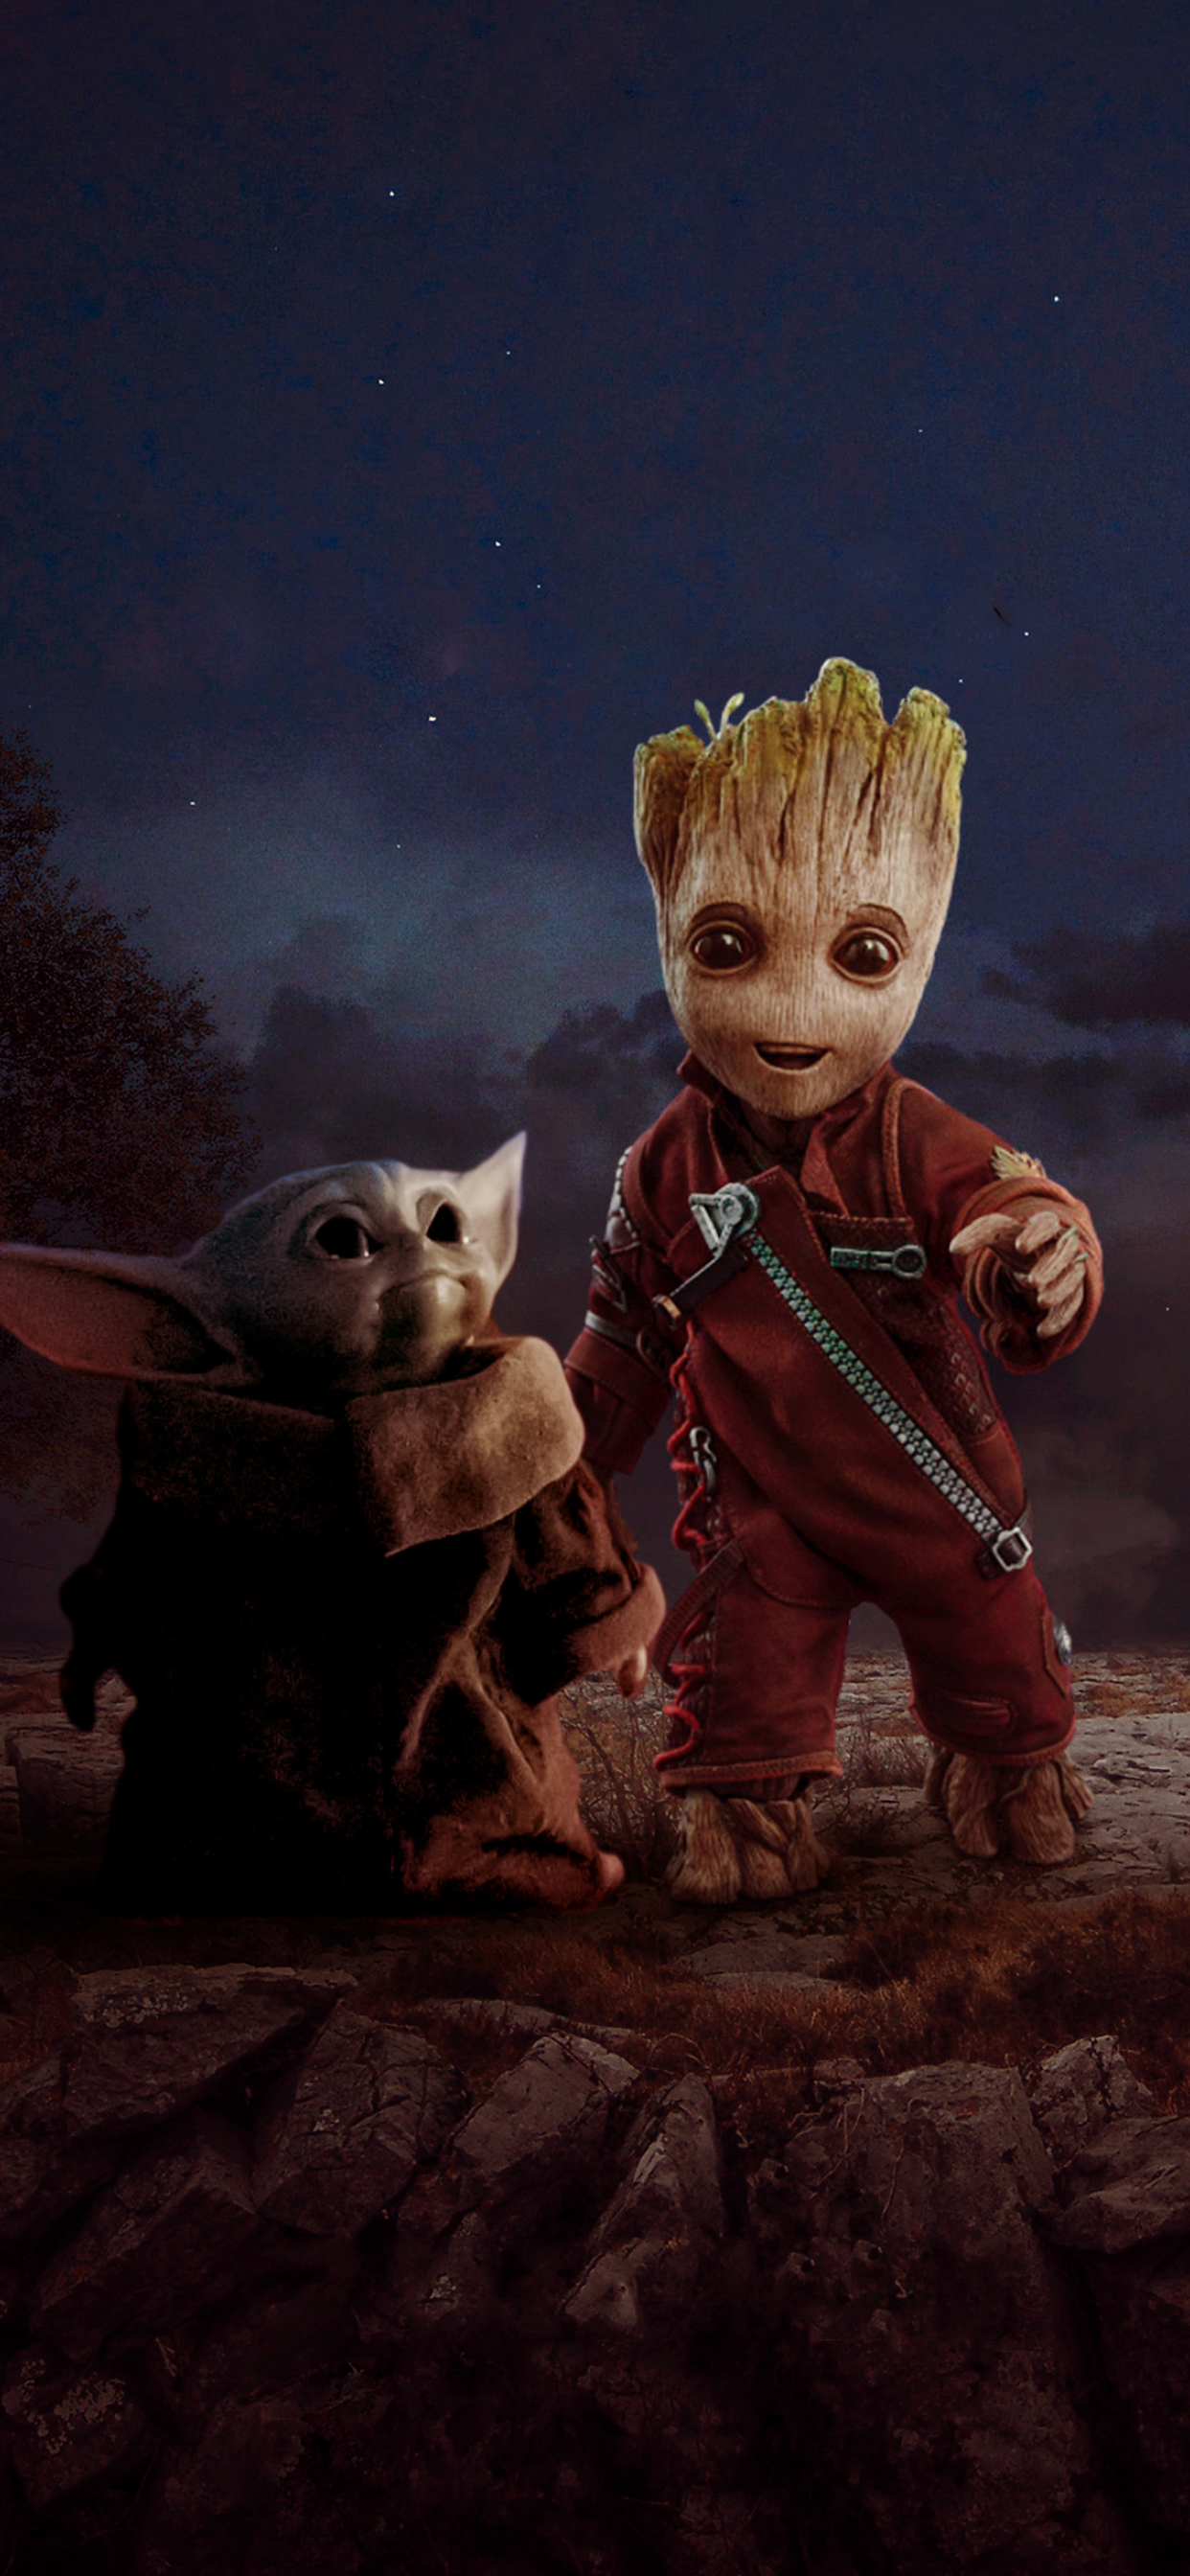 1242x2688 Groot And Baby Yoda Iphone Xs Max Wallpaper Hd Superheroes 4k Wallpapers Images Photos And Background